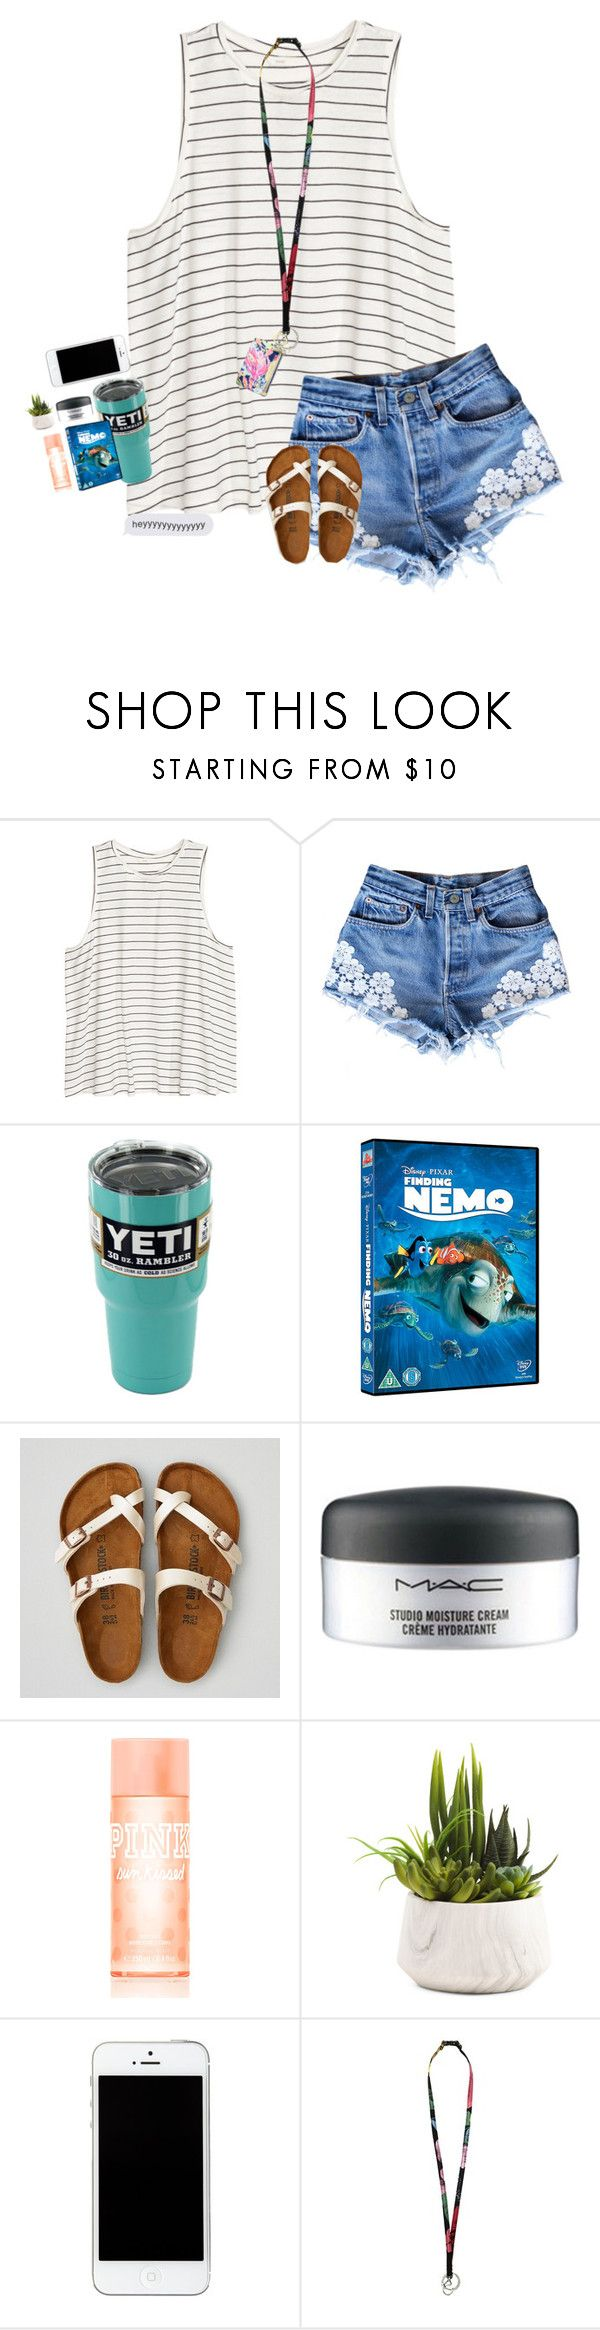 """everyone's like spring transition and i'm like hb summer?"" by southernmermaid ❤ liked on Polyvore featuring H&M, American Eagle Outfitters, MAC Cosmetics, Victoria's Secret PINK, Vera Bradley and Lilly Pulitzer"